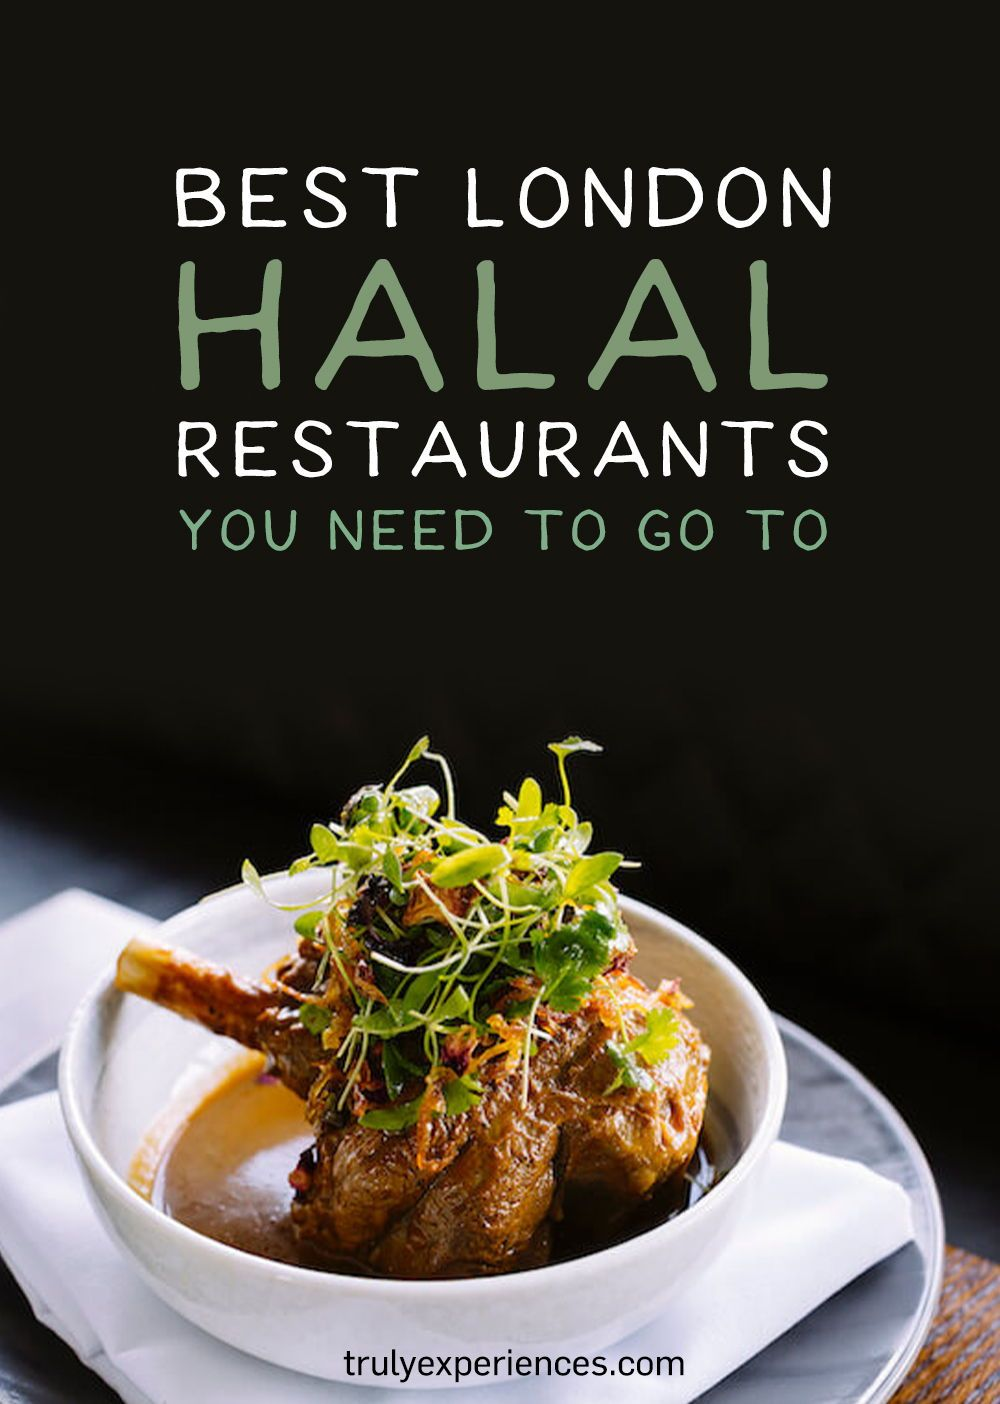 What Are The Best Halal Restaurants In London In 2020 In 2020 Halal Recipes Food Food Guide